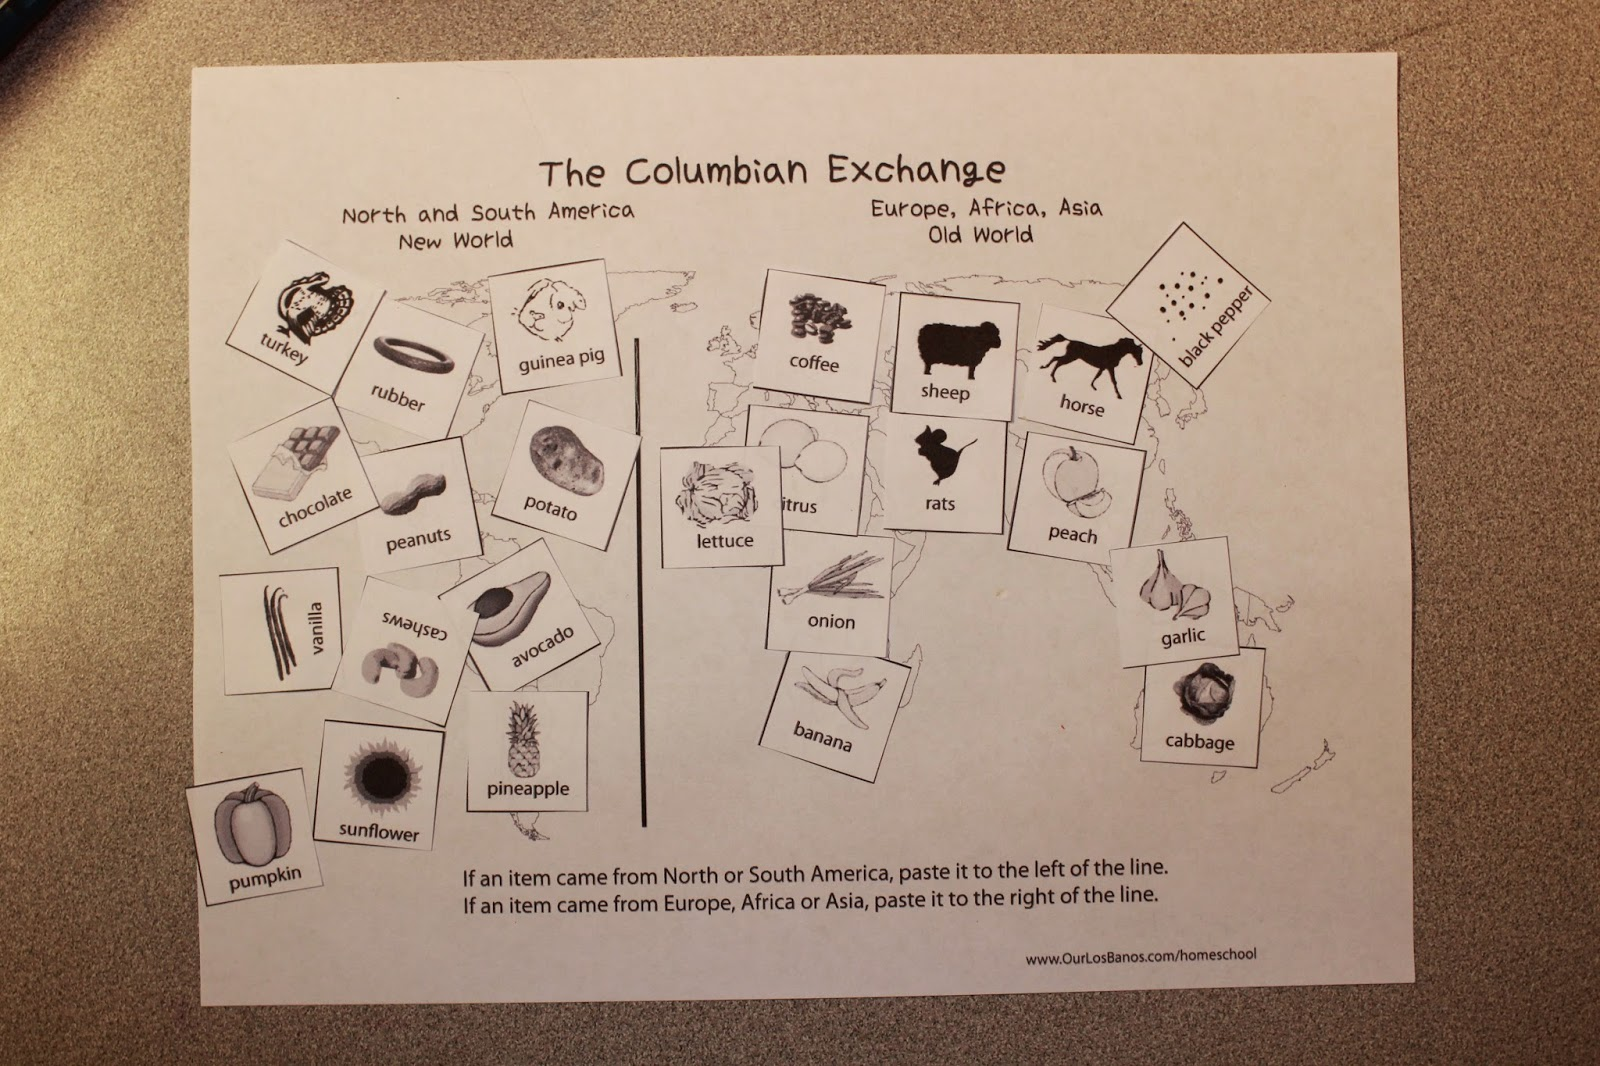 columbian exchange diagram cuts of lamb highland heritage homeschool learning about the taíno